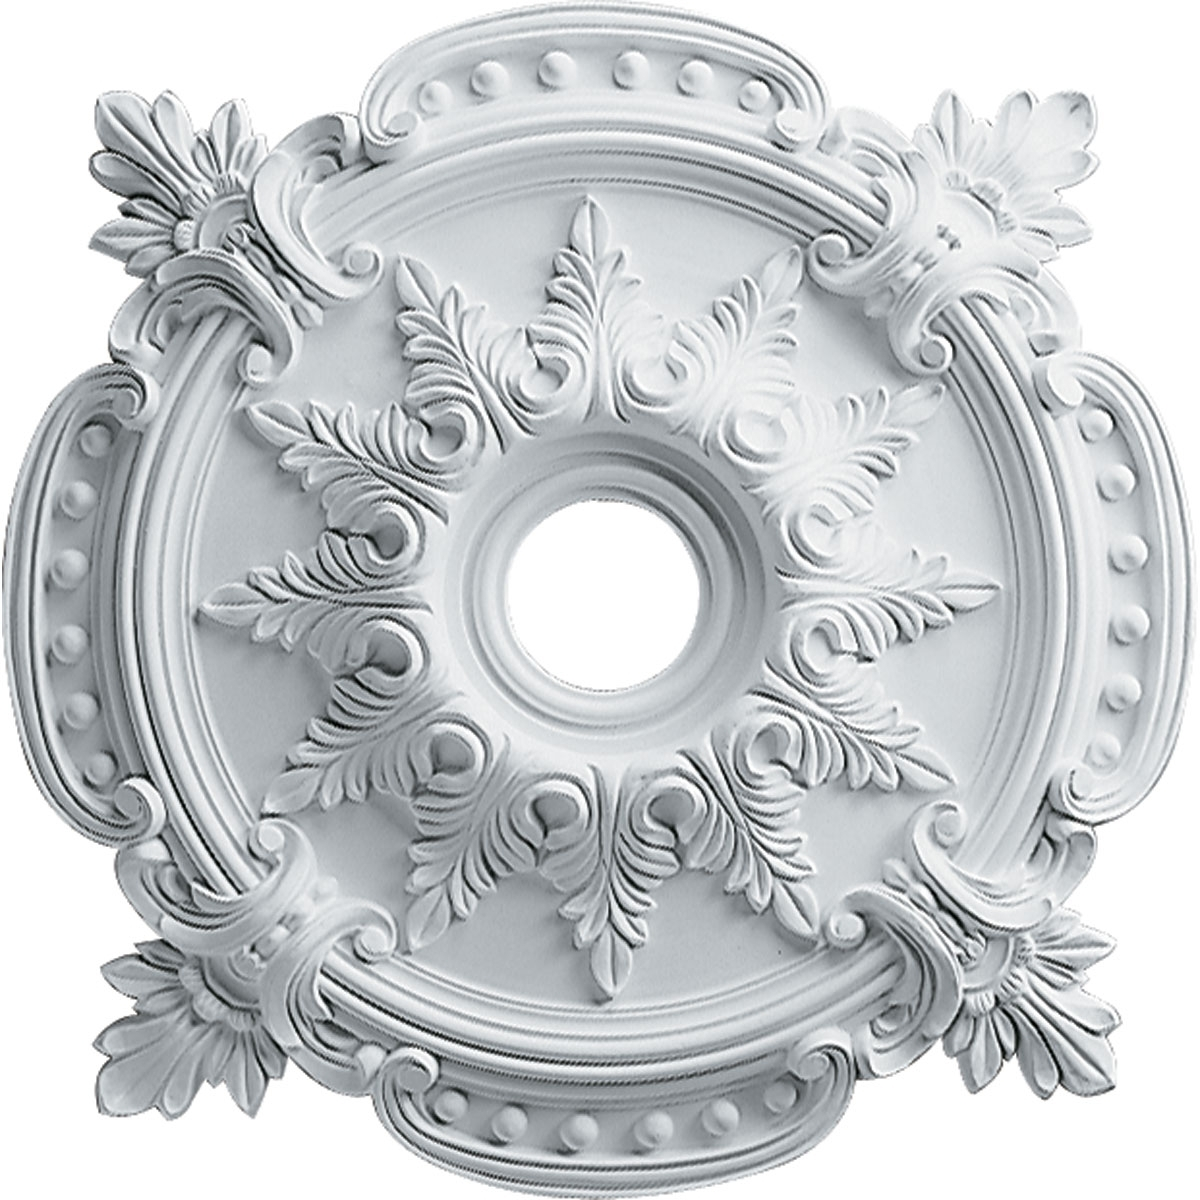 Ceiling Medallion Wall Art Throughout Most Recent Ceiling Medallions Wall Art – Ceiling Medallions Buying Guides To (View 11 of 15)